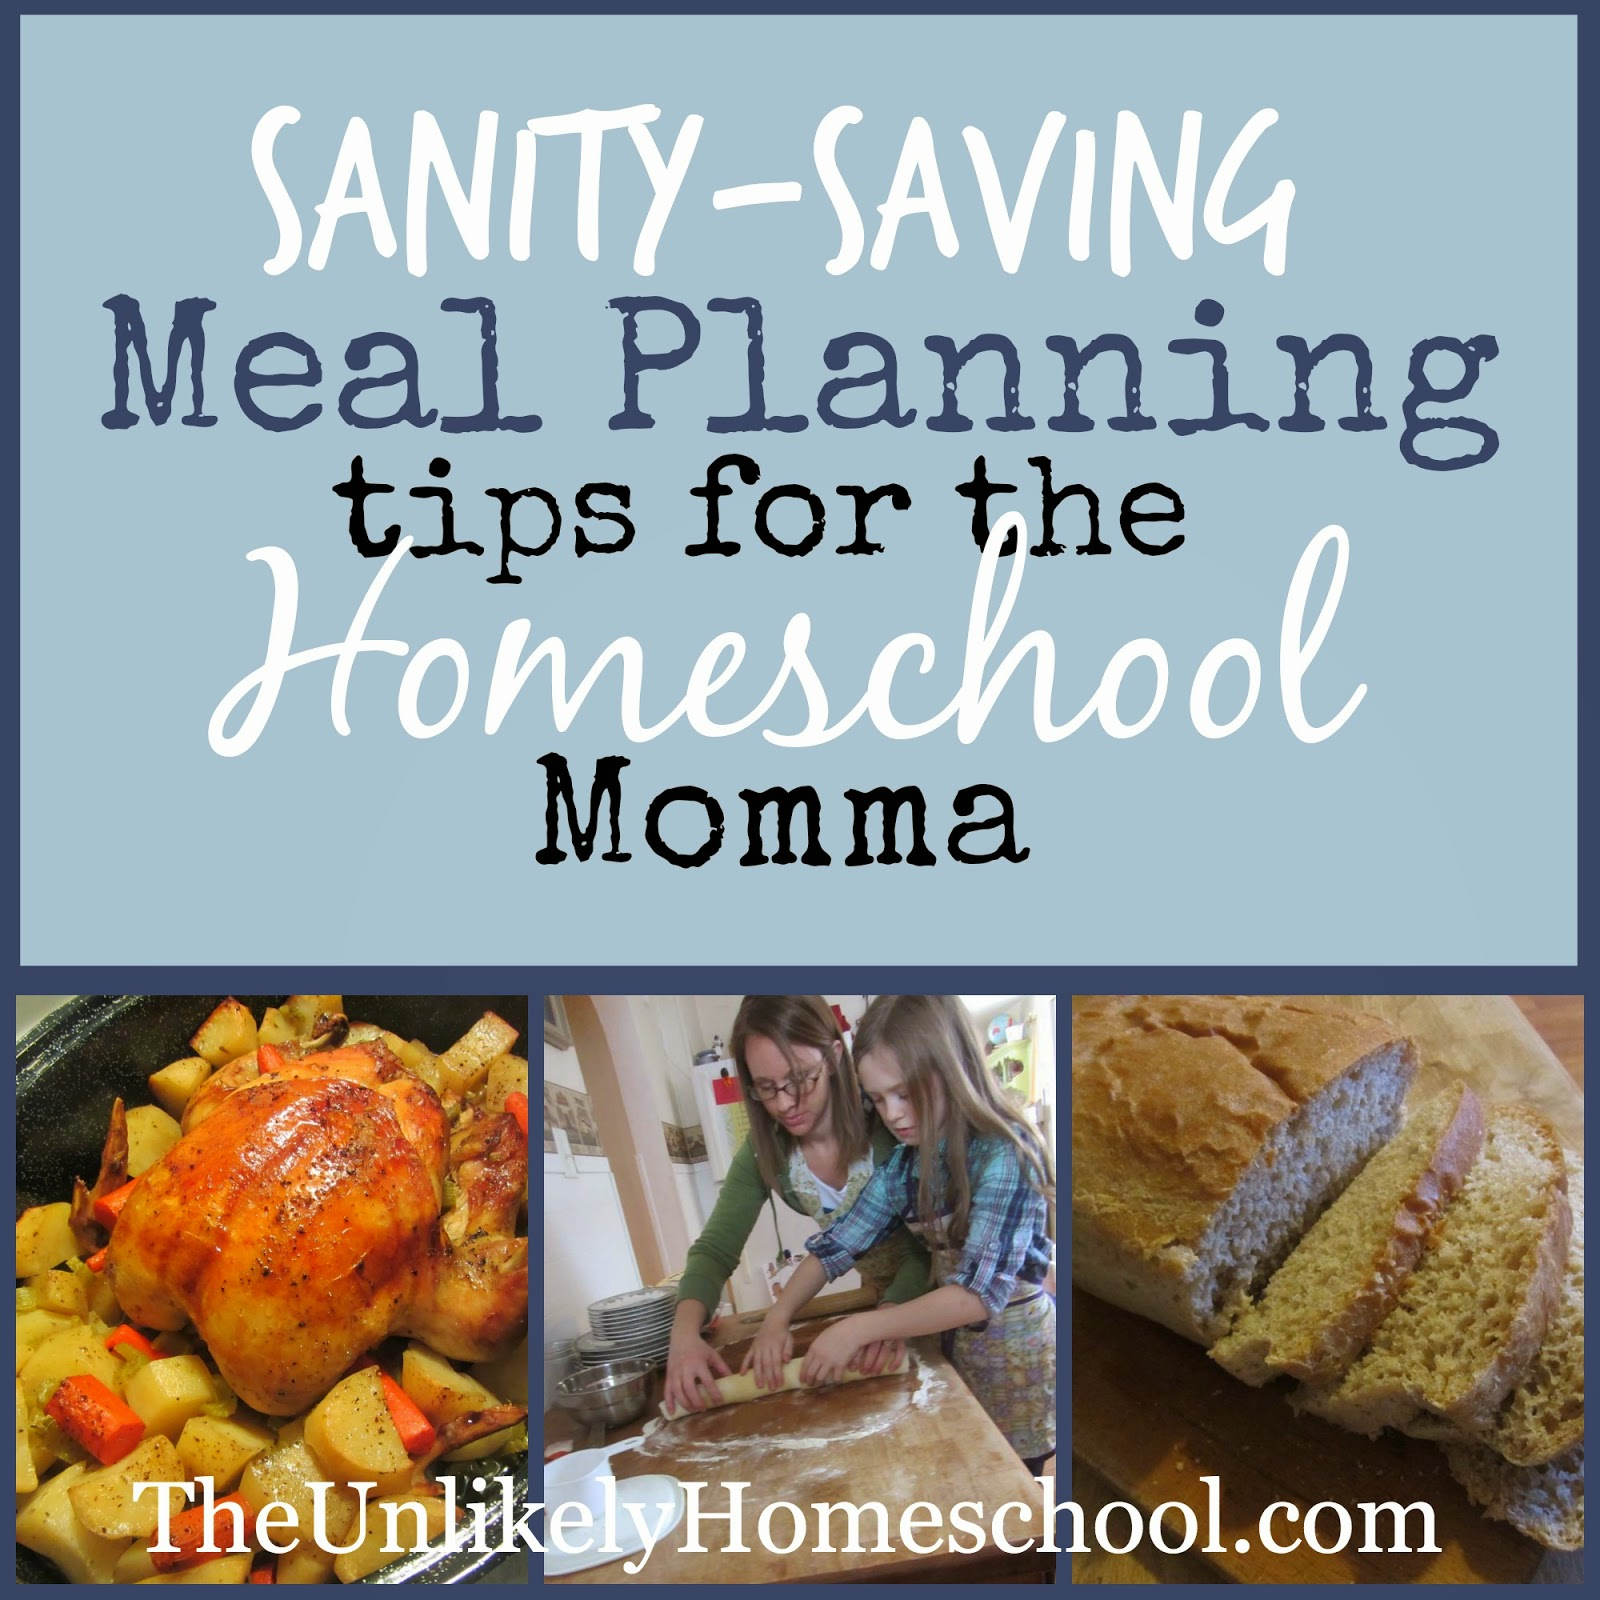 Sanity-Saving Meal Planning Tips for the Homeschool Momma {The Unlikely Homeschool}